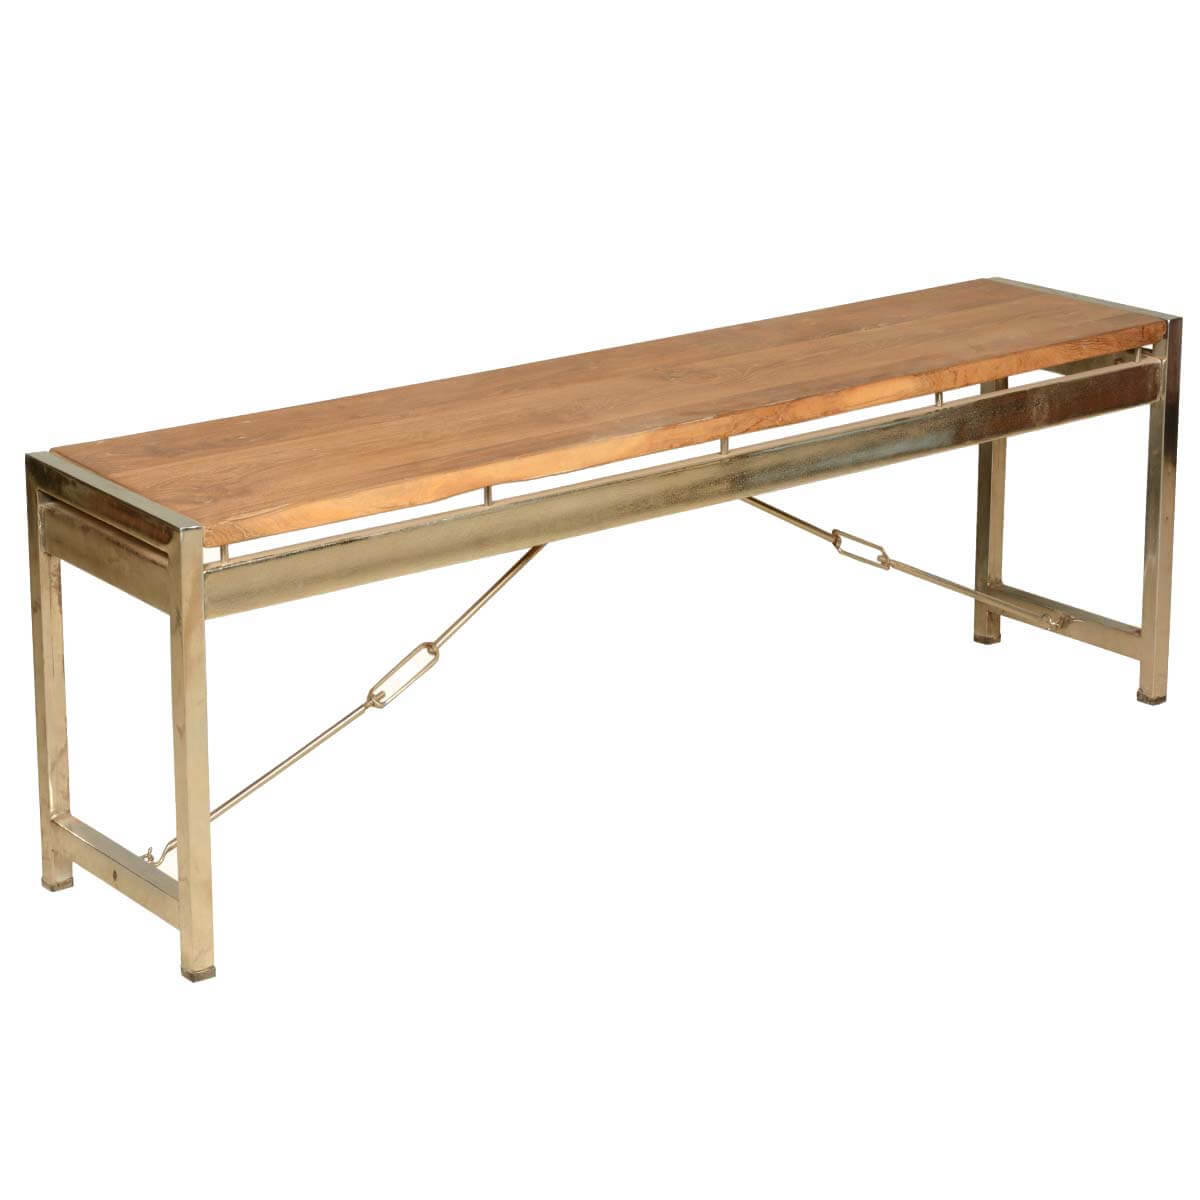 Modern Fusion Rustic Solid Wood Industrial Dining Bench